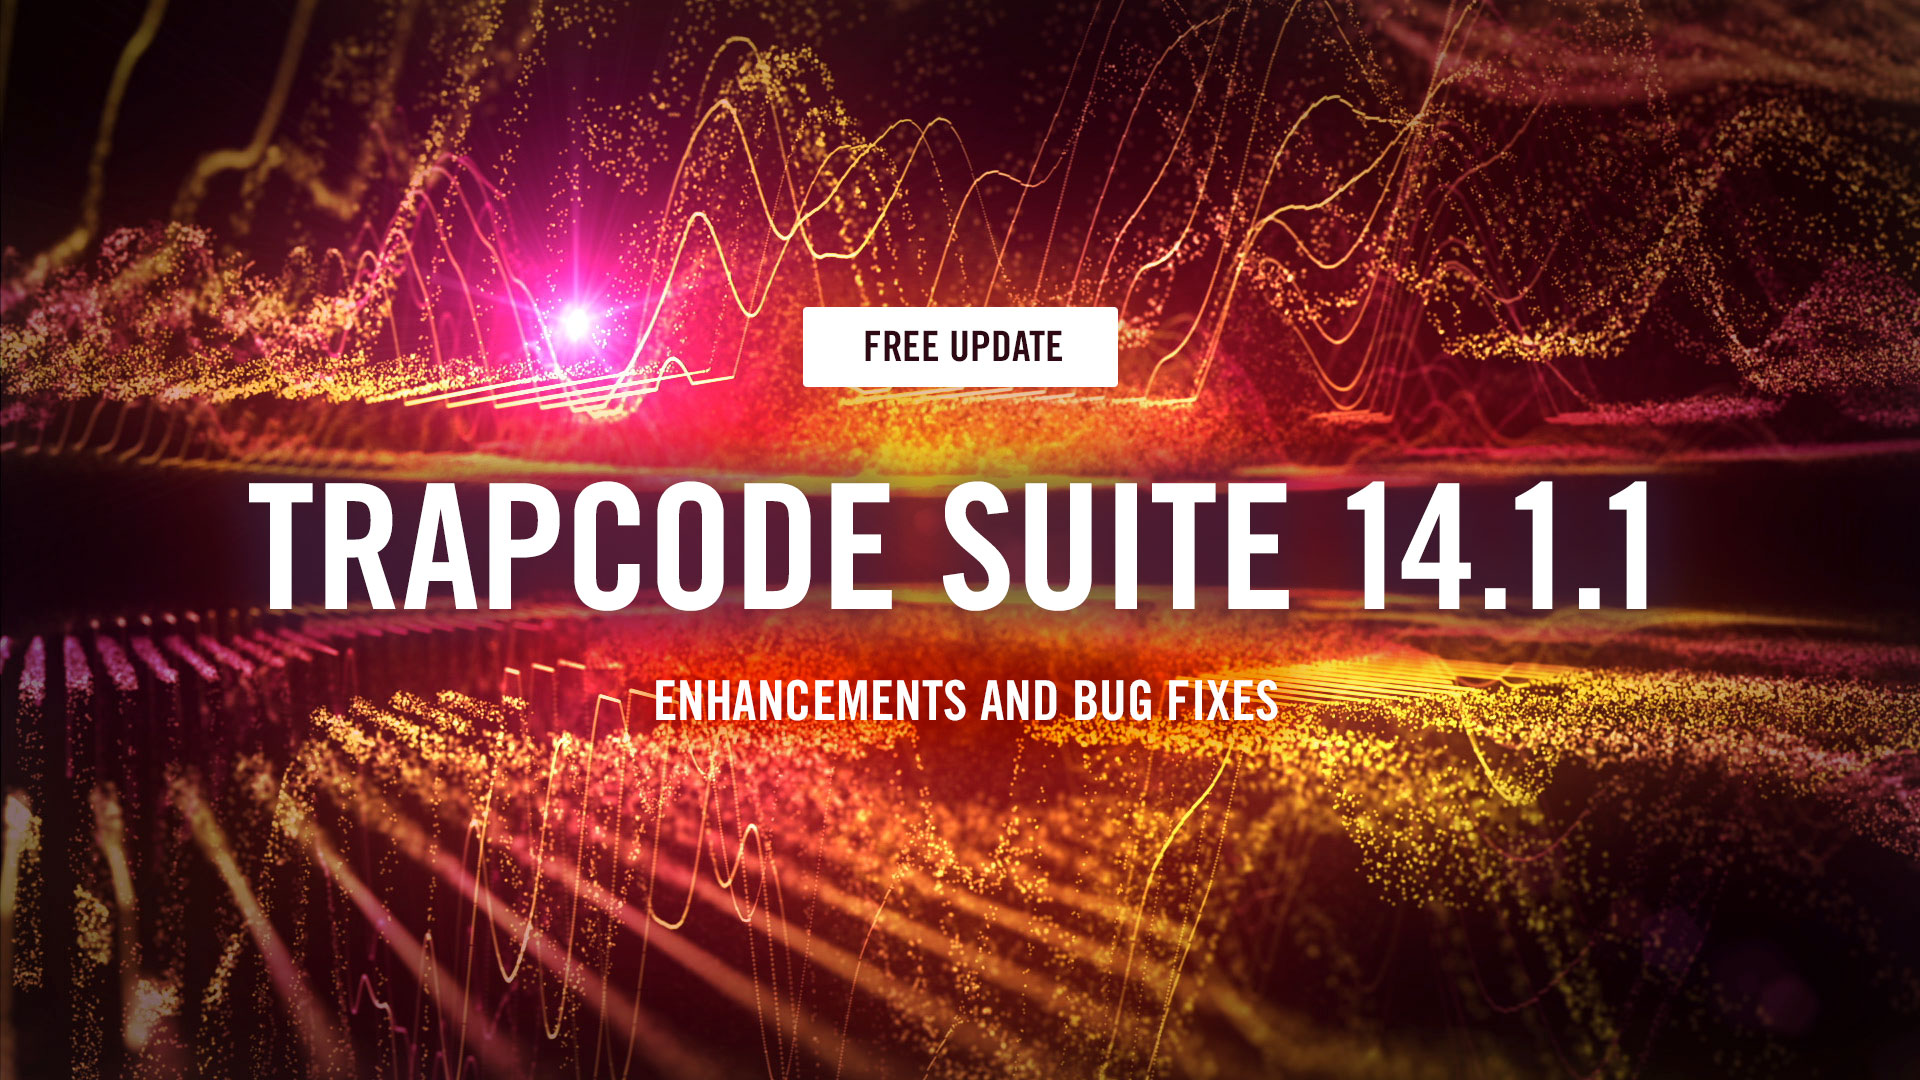 Update: Trapcode Suite 14.1.1, Free for Trapcode Suite 14 Users